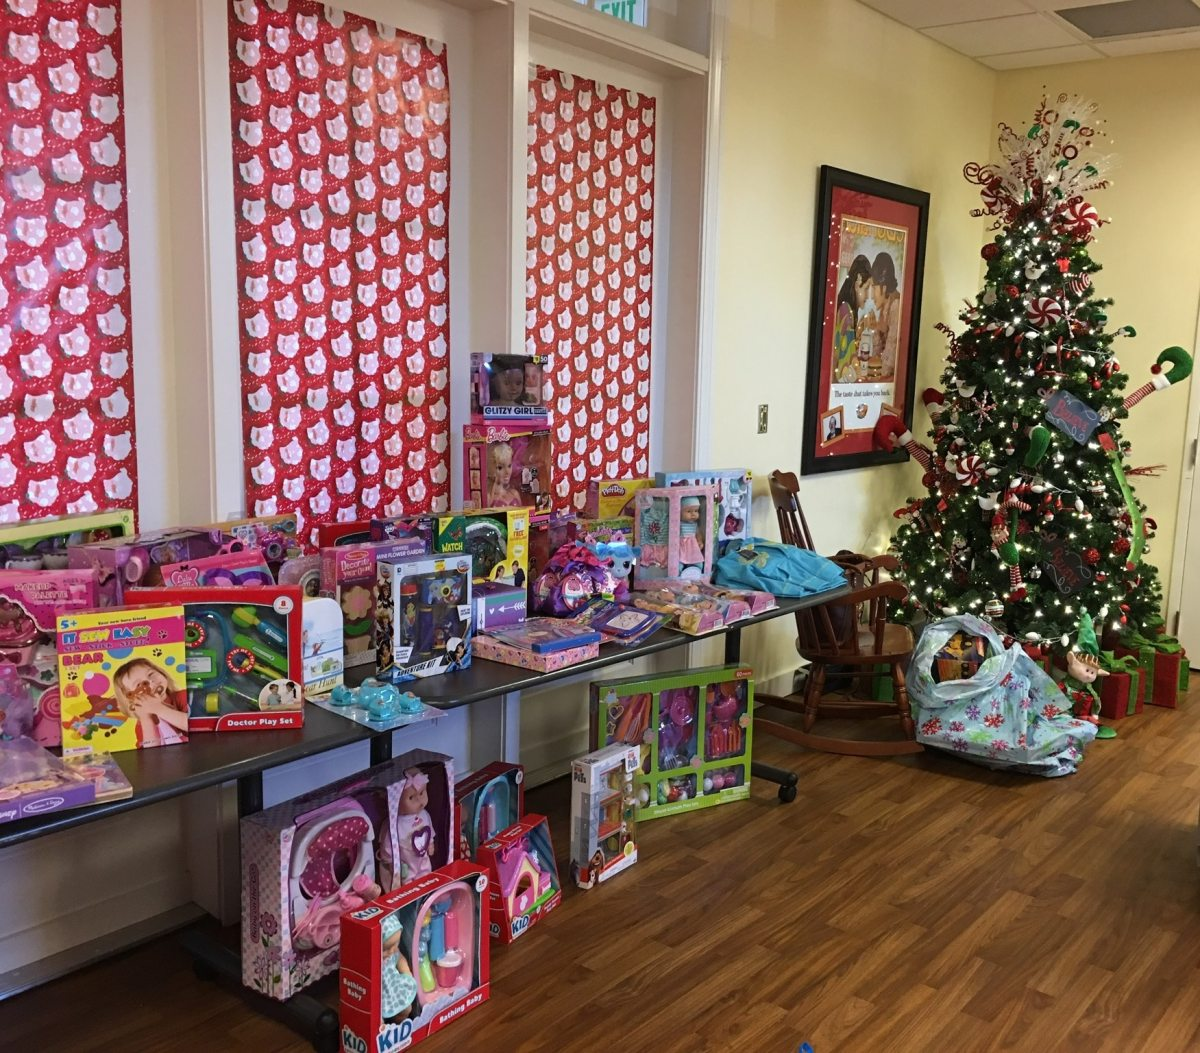 Donate to Ronald McDonald House and the Ronald Workshop this Christmas on behalf of Riverchase Galleria shooting victim Molly Davis